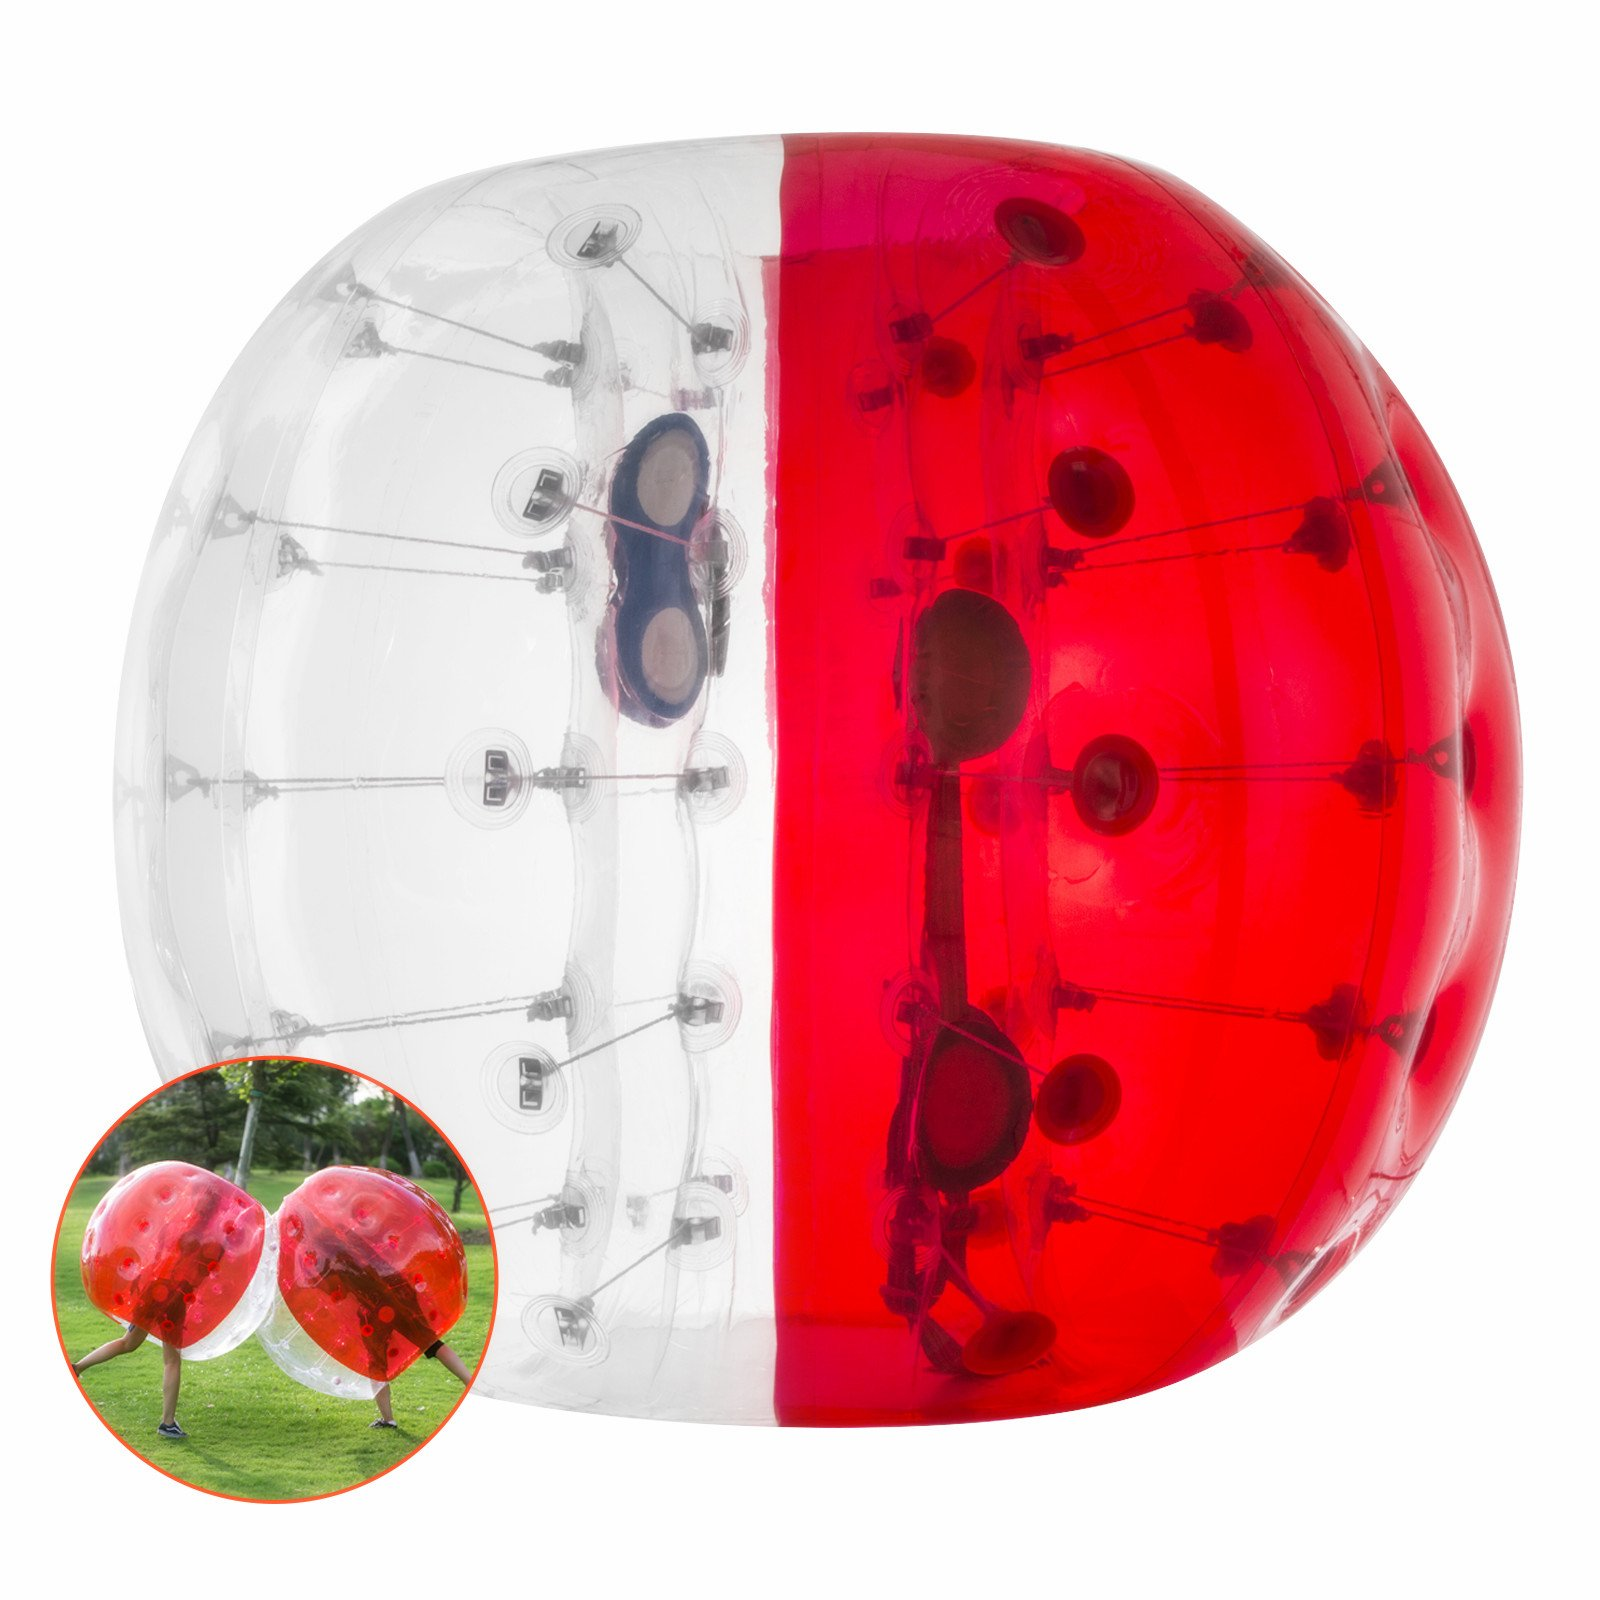 BestEquip Inflatable Bubble Soccer Bumper Ball 5ft Red and Transparent for Adult Giant Human and Child Outdoor Inflatable Ball